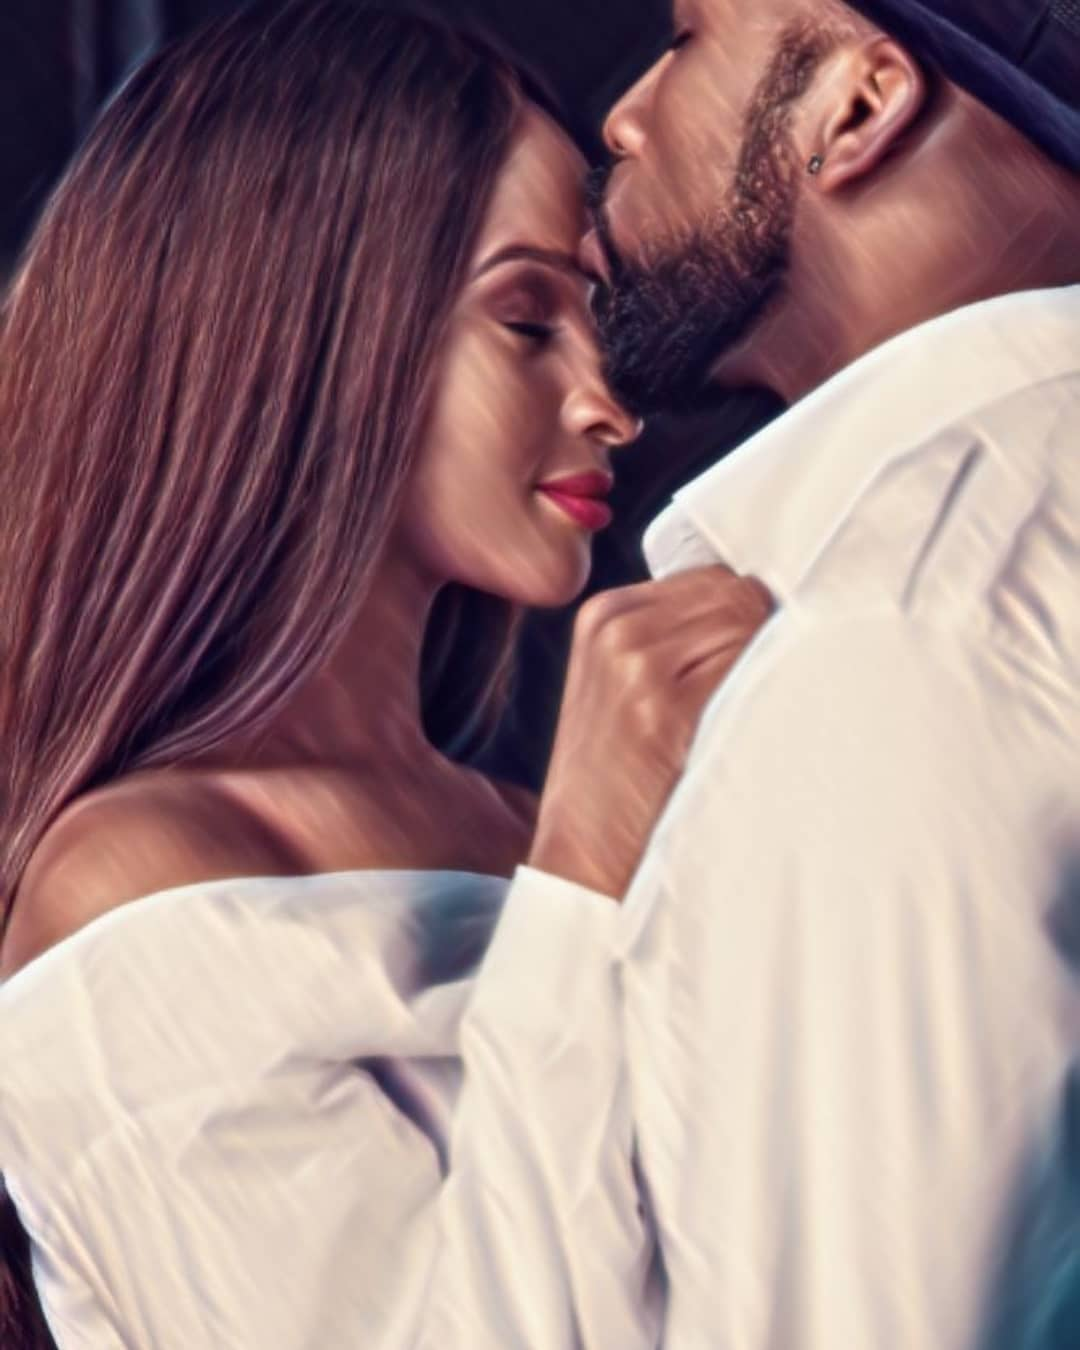 56165225 367474450513089 760237644487214025 n - Adesua Etomi writes lovely birthday note to Banky W on his 38th birthday